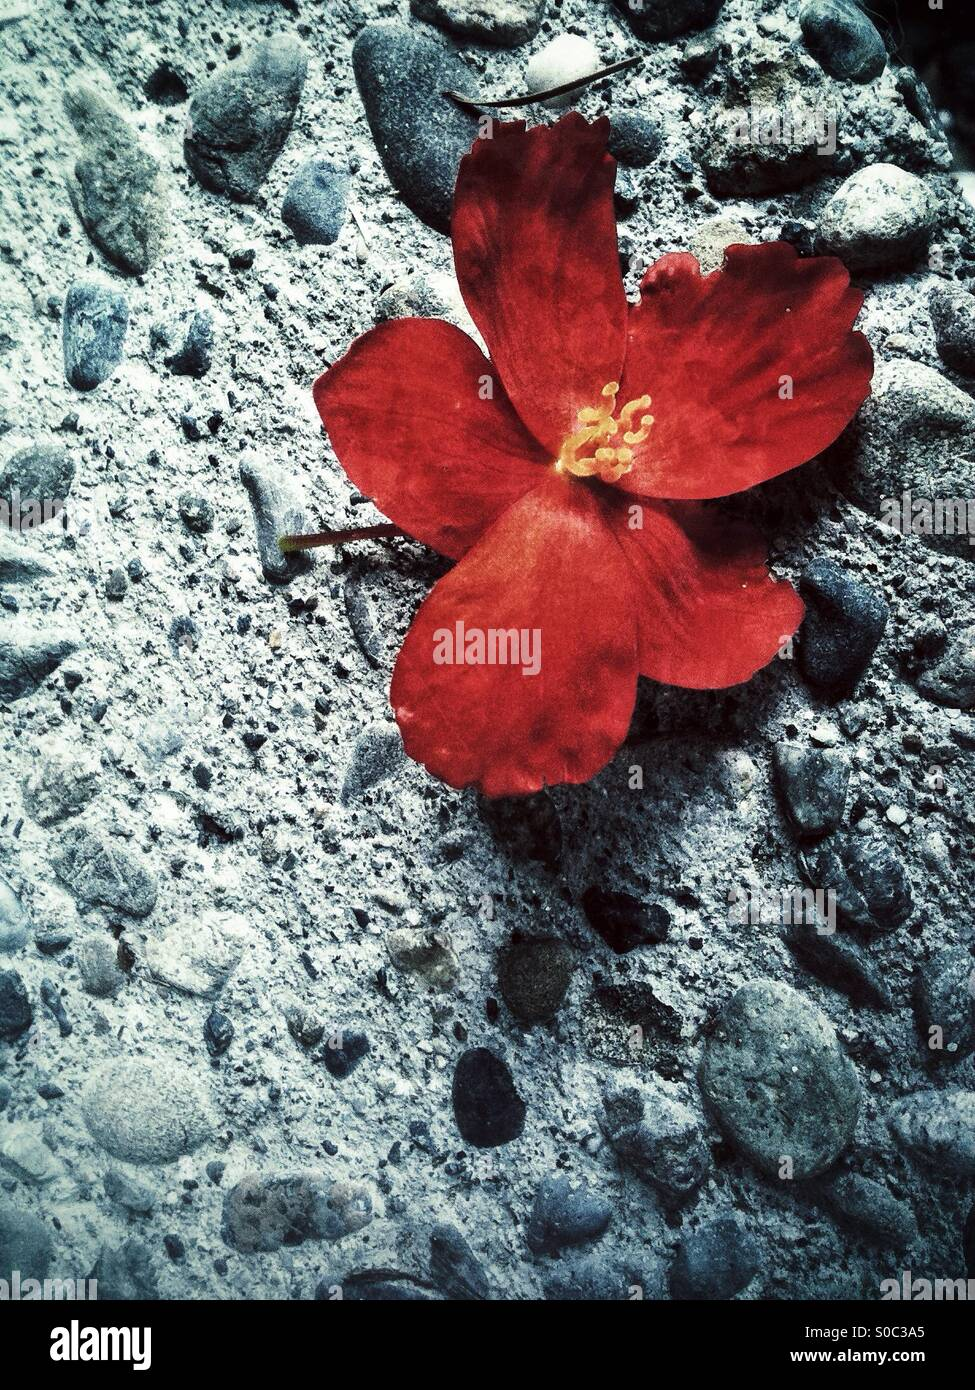 Red flower on a rocky surface - Stock Image